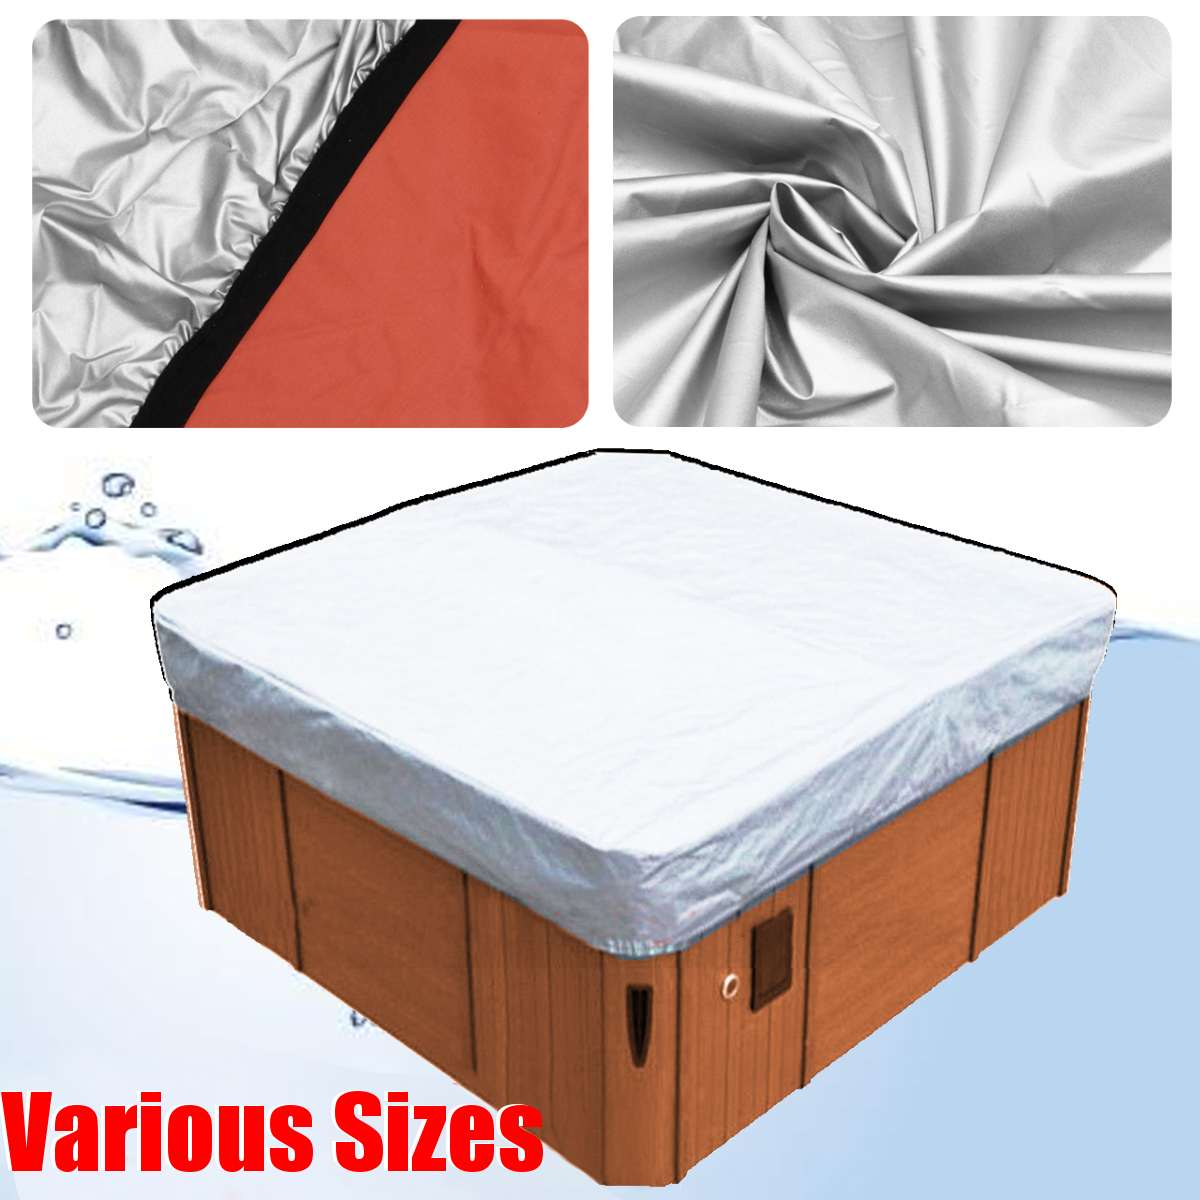 37 Sizes Universal Spa Tub Cover Hotspring Cover Cap Cubierta Protector Jacuzzis Hotspring Spa Cubrir Cubierta Weather Guard